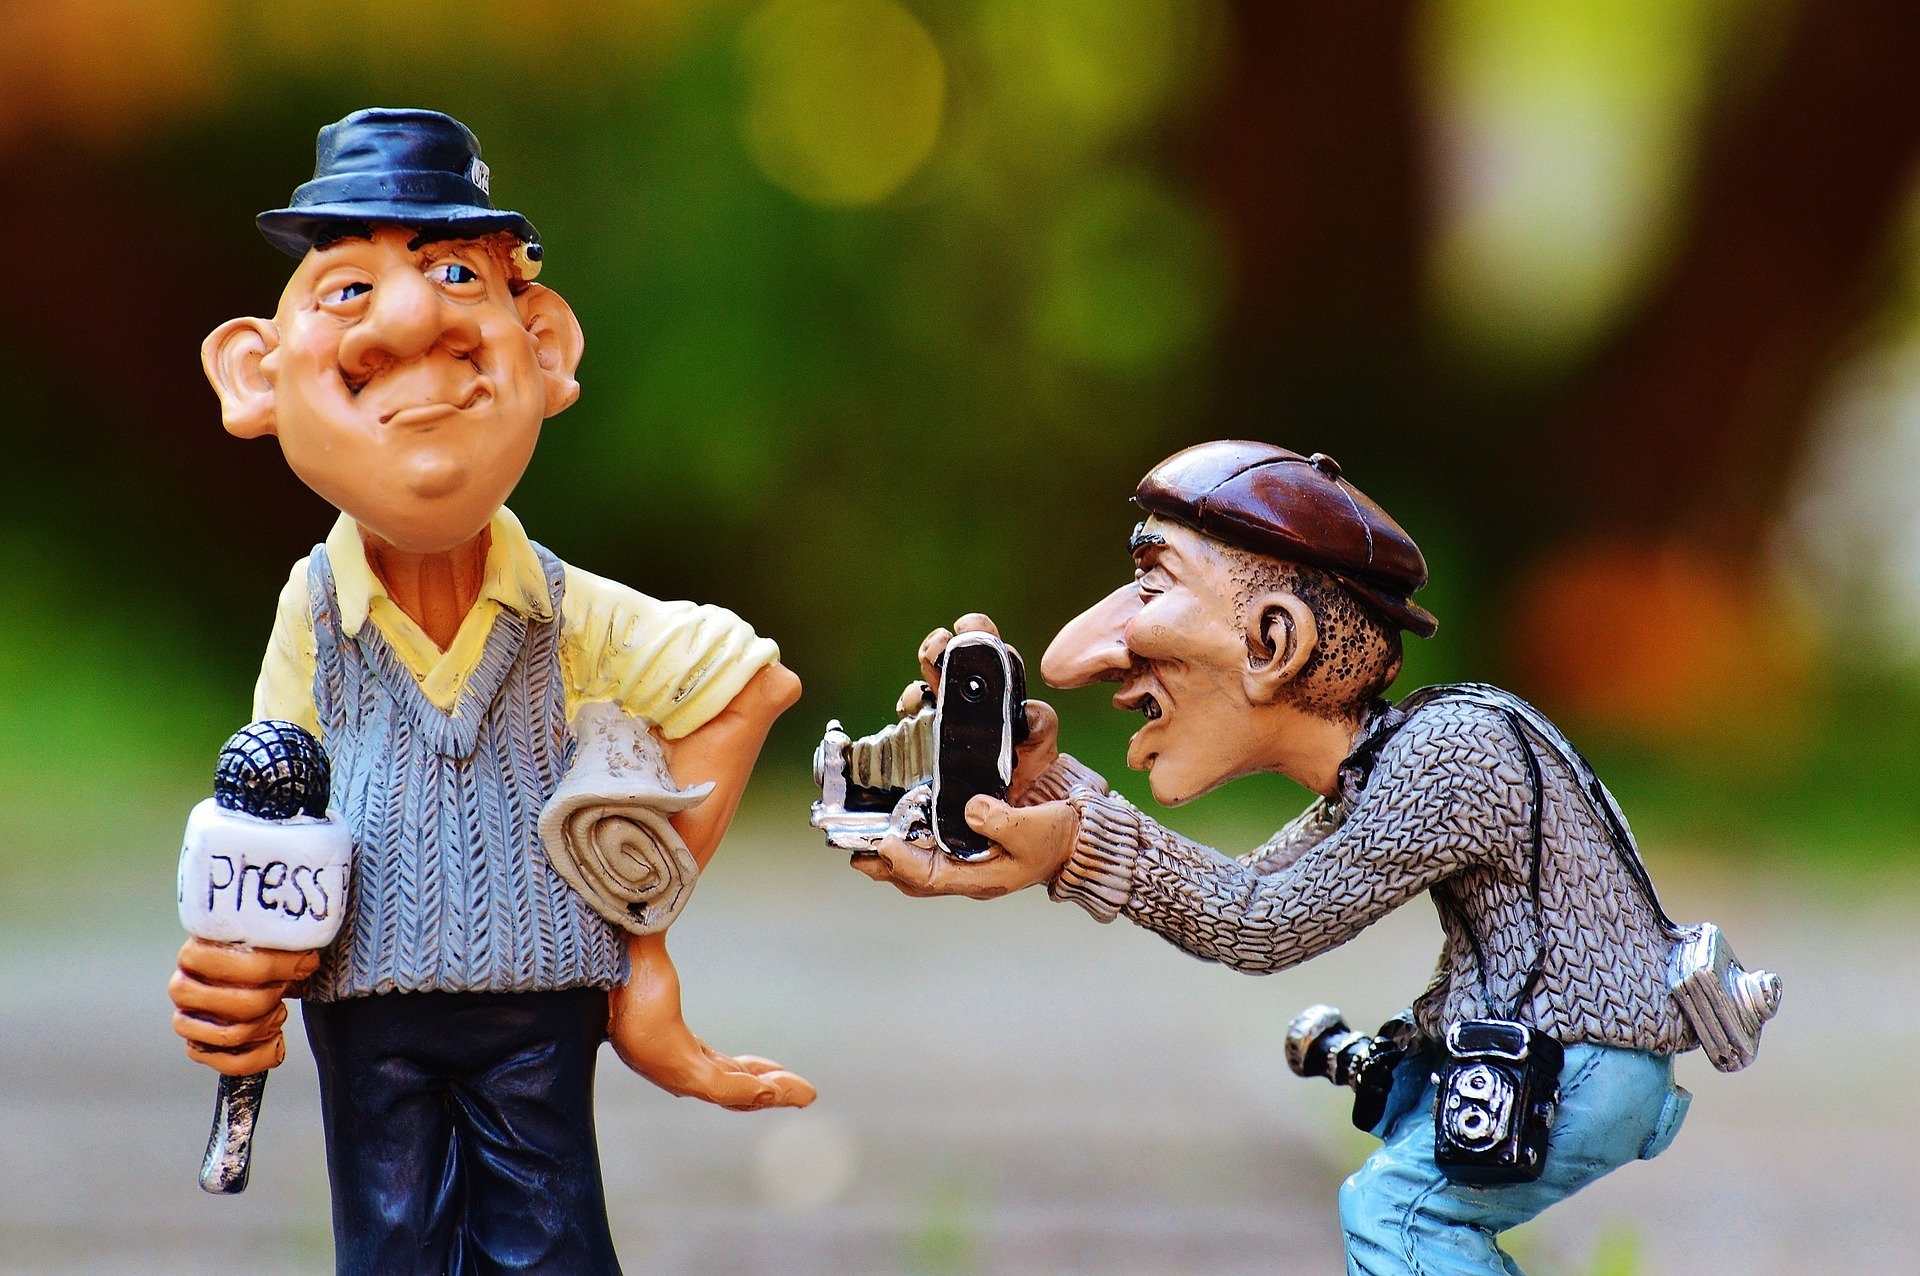 Photograph of a cartoon-like figurines of a journalist, holding a microphone and a rolled up newspaper, and a photographer, holding a camera and photographing the journalist.